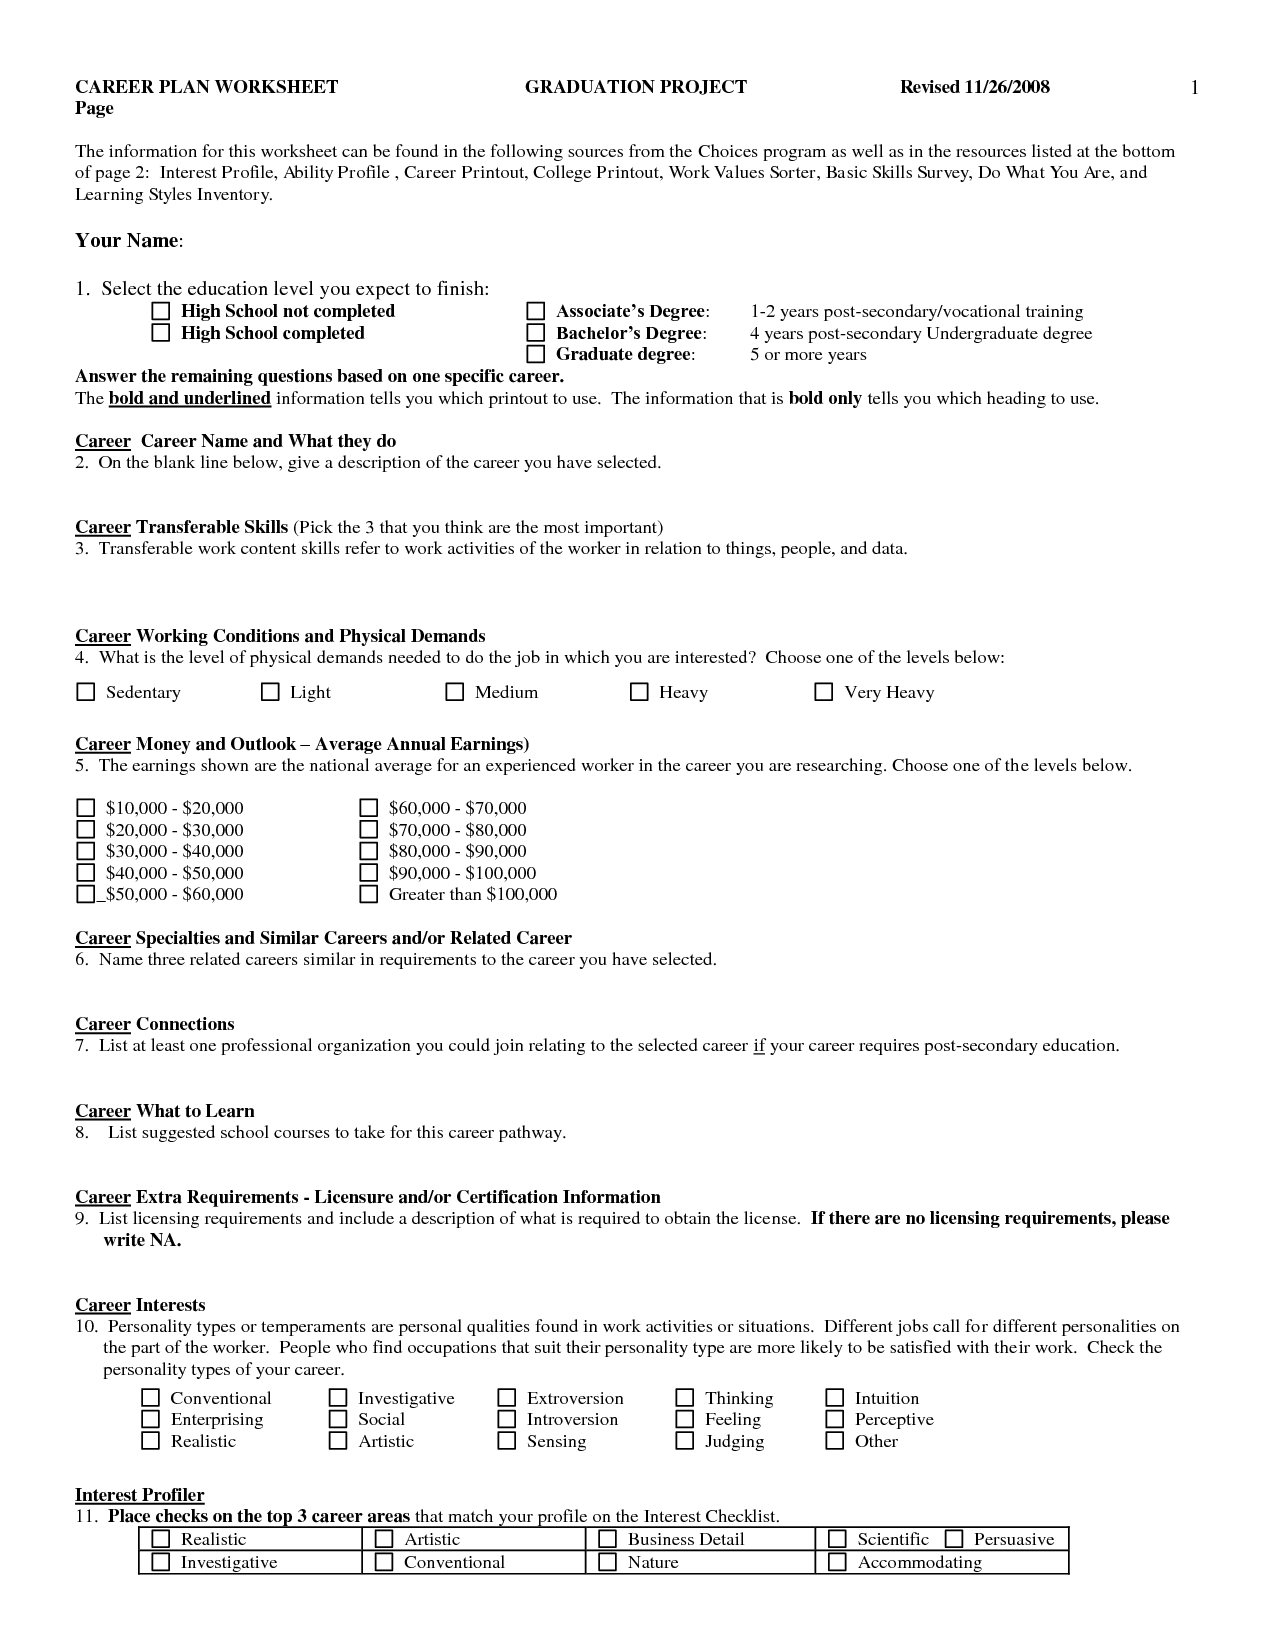 Worksheet Free Printable Geometry Worksheets For High School – Math Worksheets for High School Free Printable